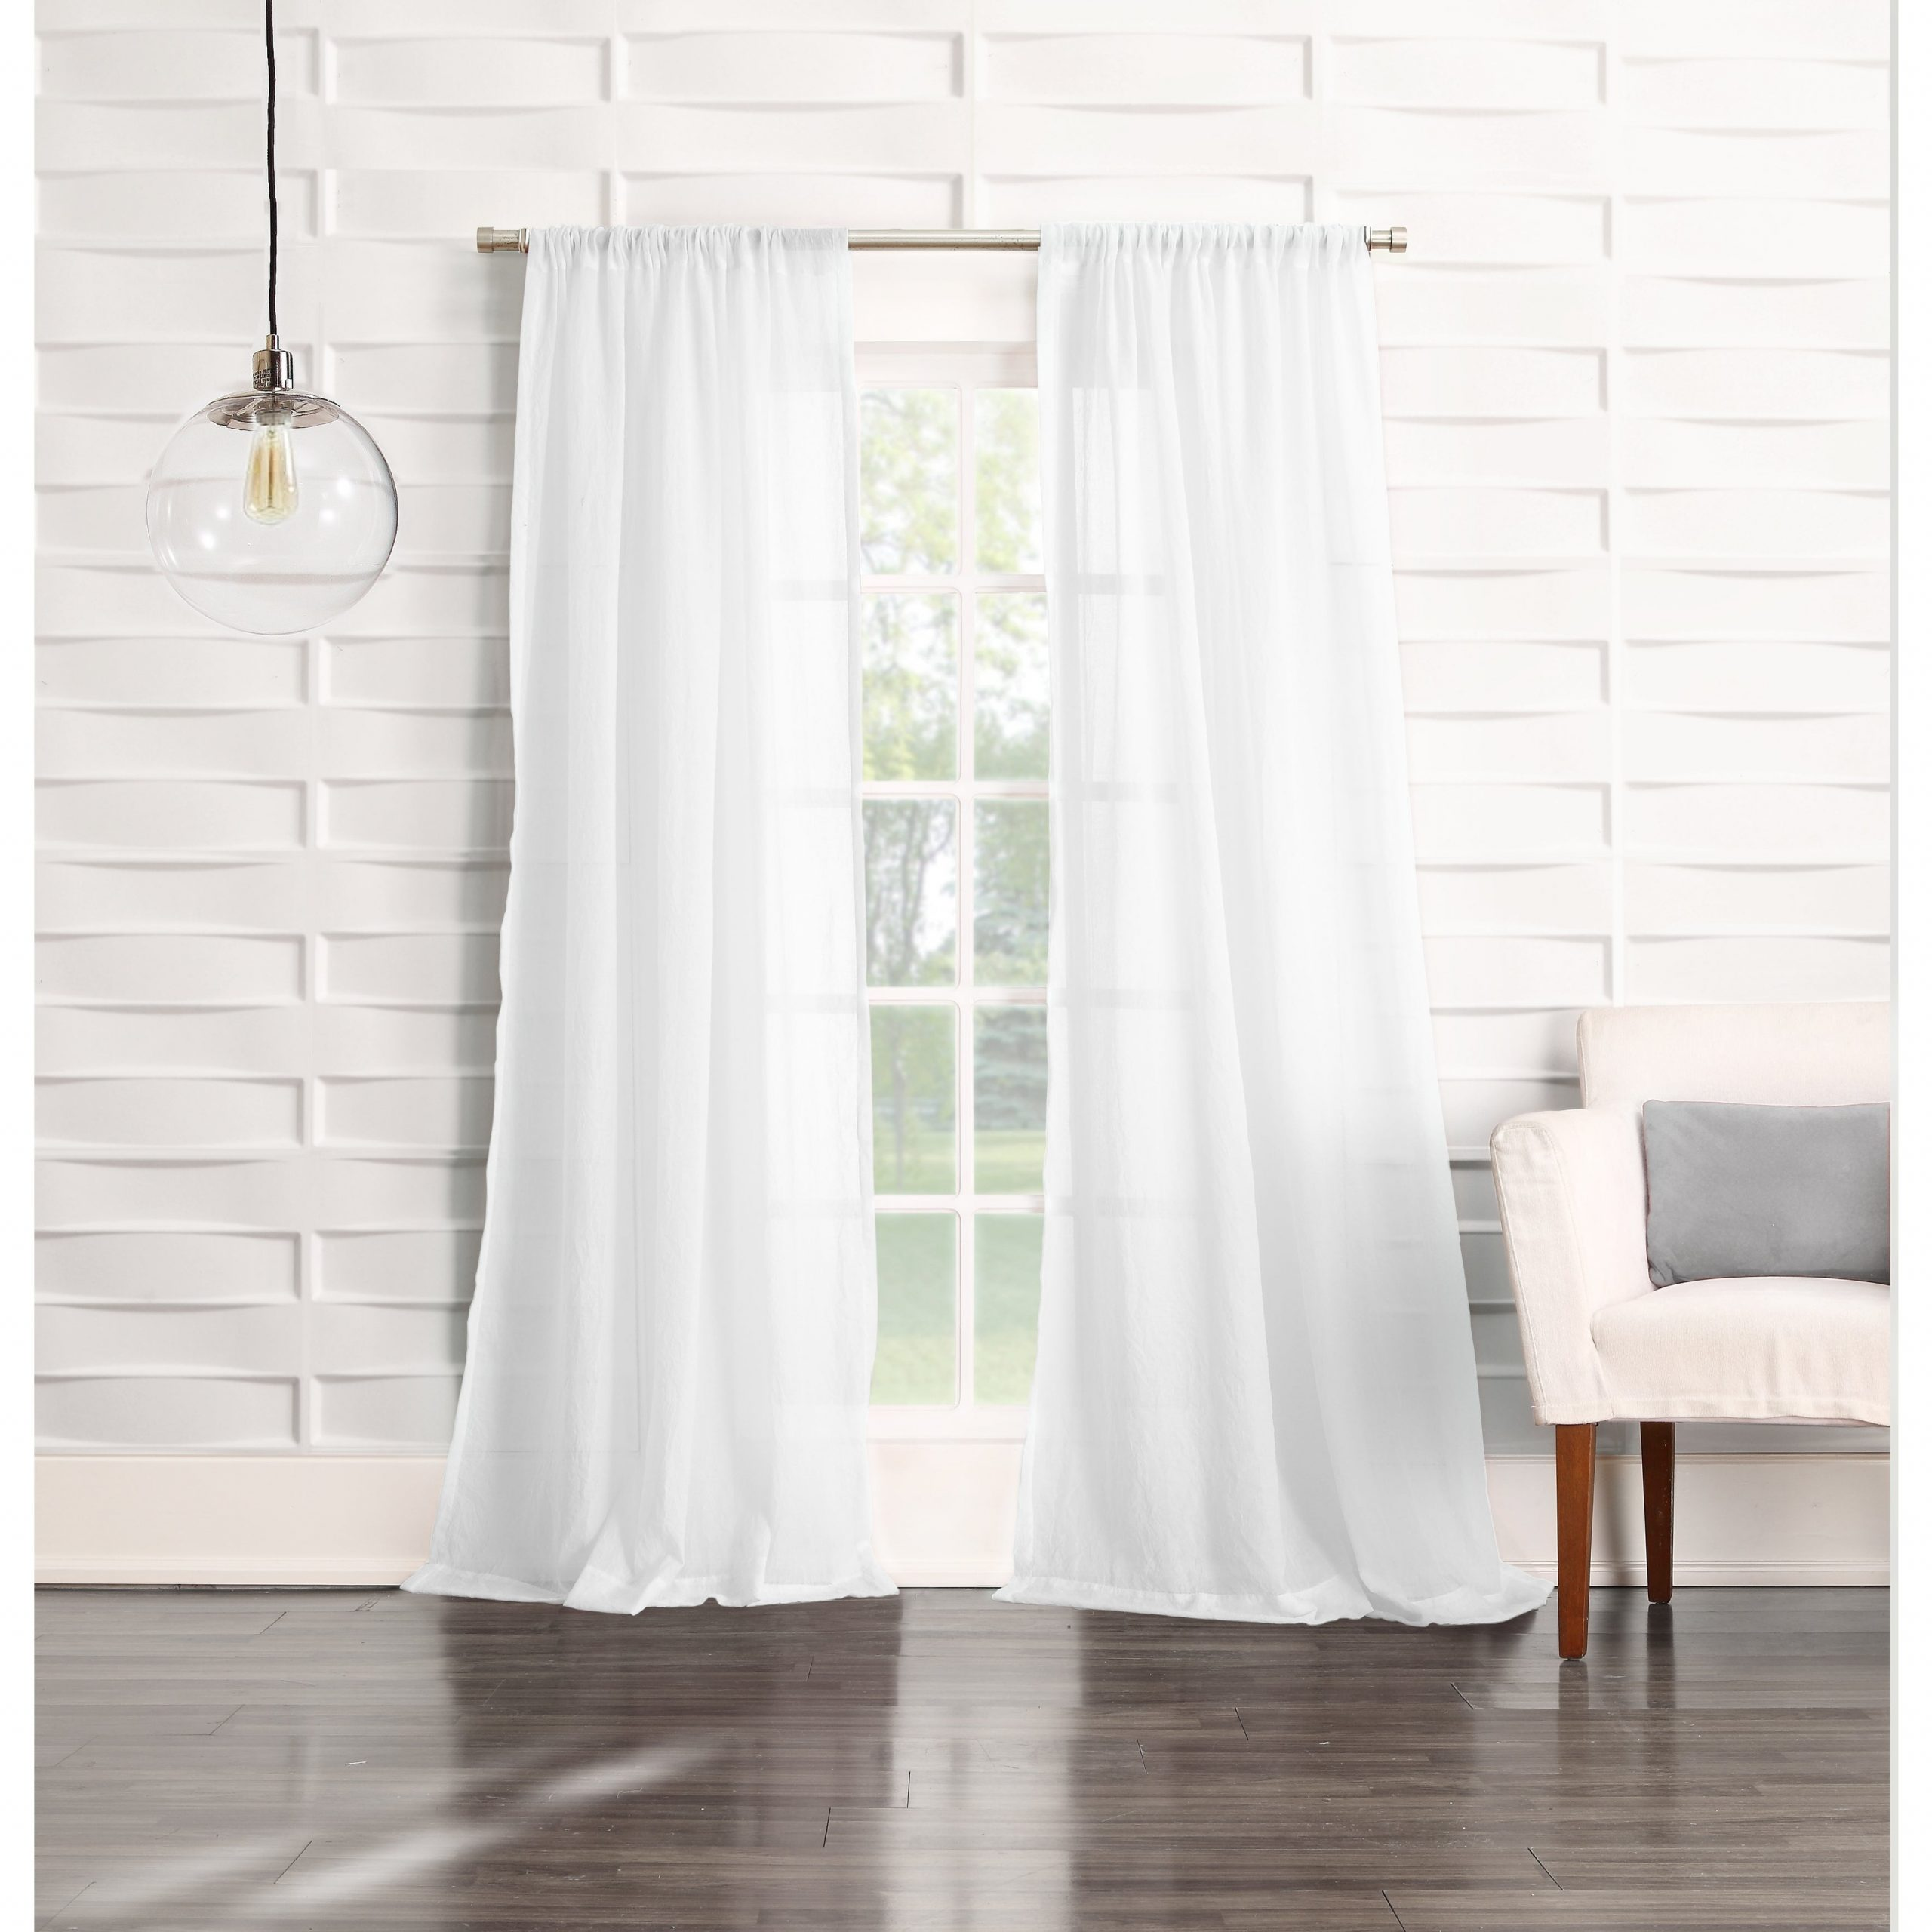 Most Current No. 918 Ladonna Rod Pocket Solid Semi Sheer Window Curtain Panel Intended For Ladonna Rod Pocket Solid Semi Sheer Window Curtain Panels (Gallery 1 of 20)